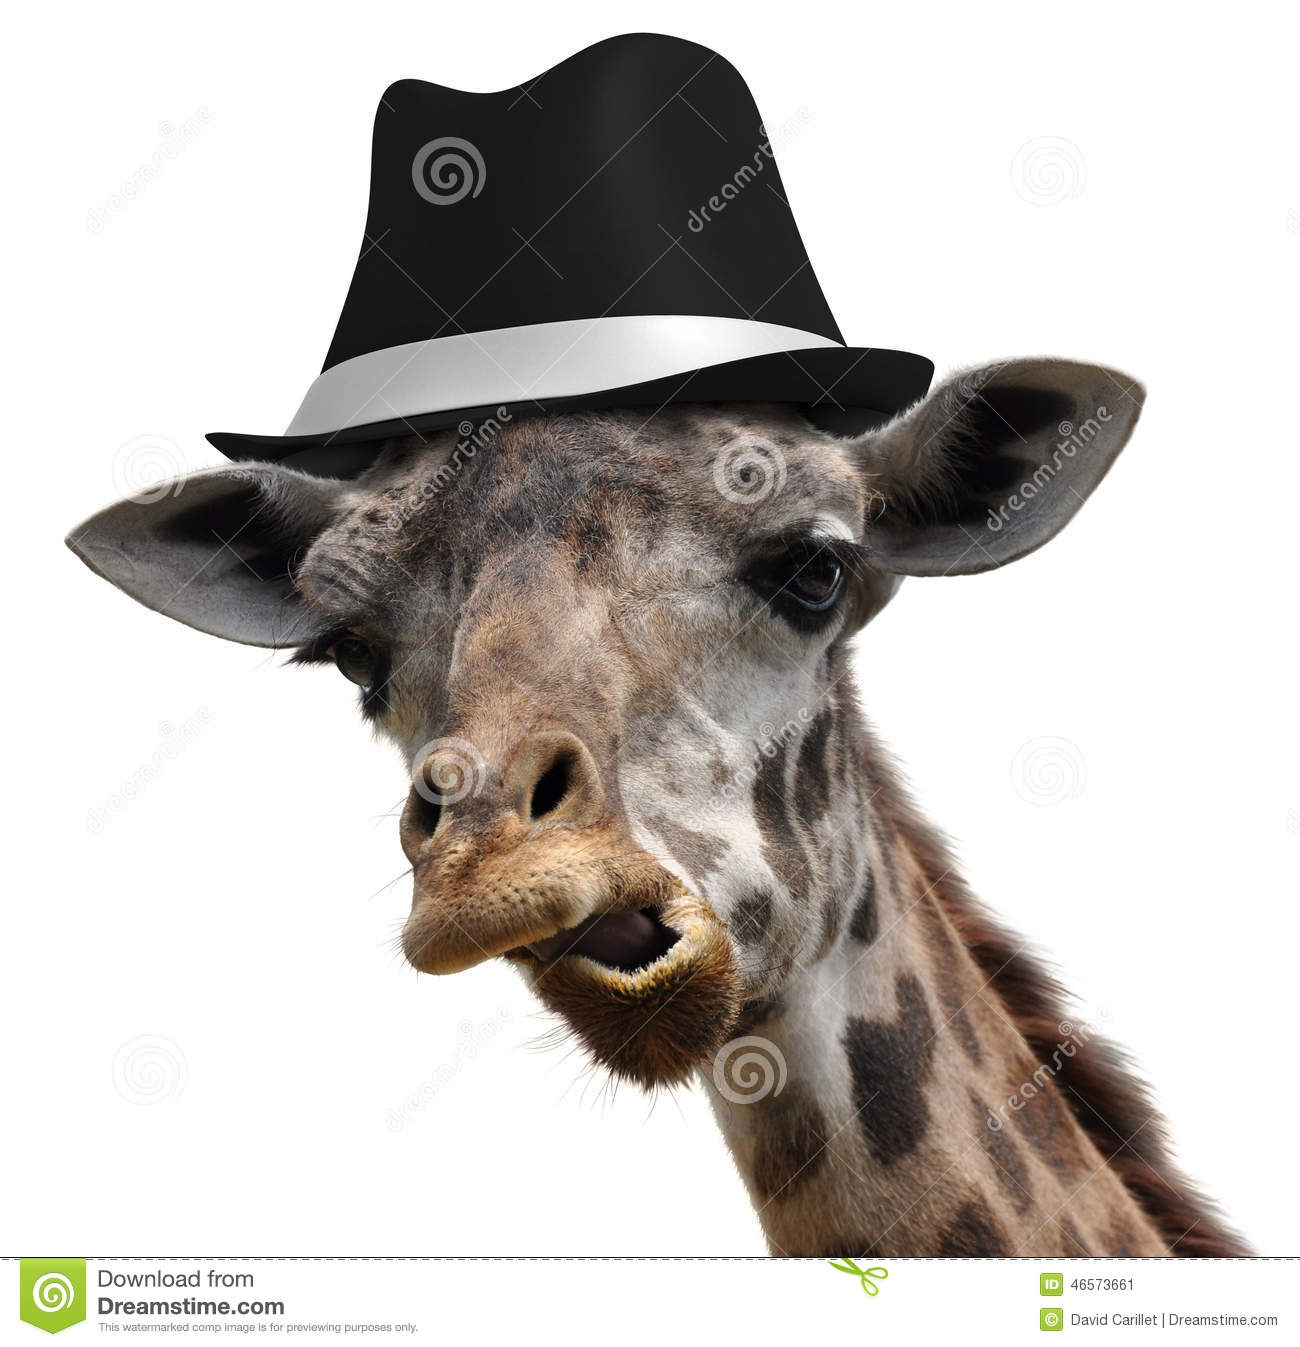 Silly giraffe wearing a fedora and making an unusual face